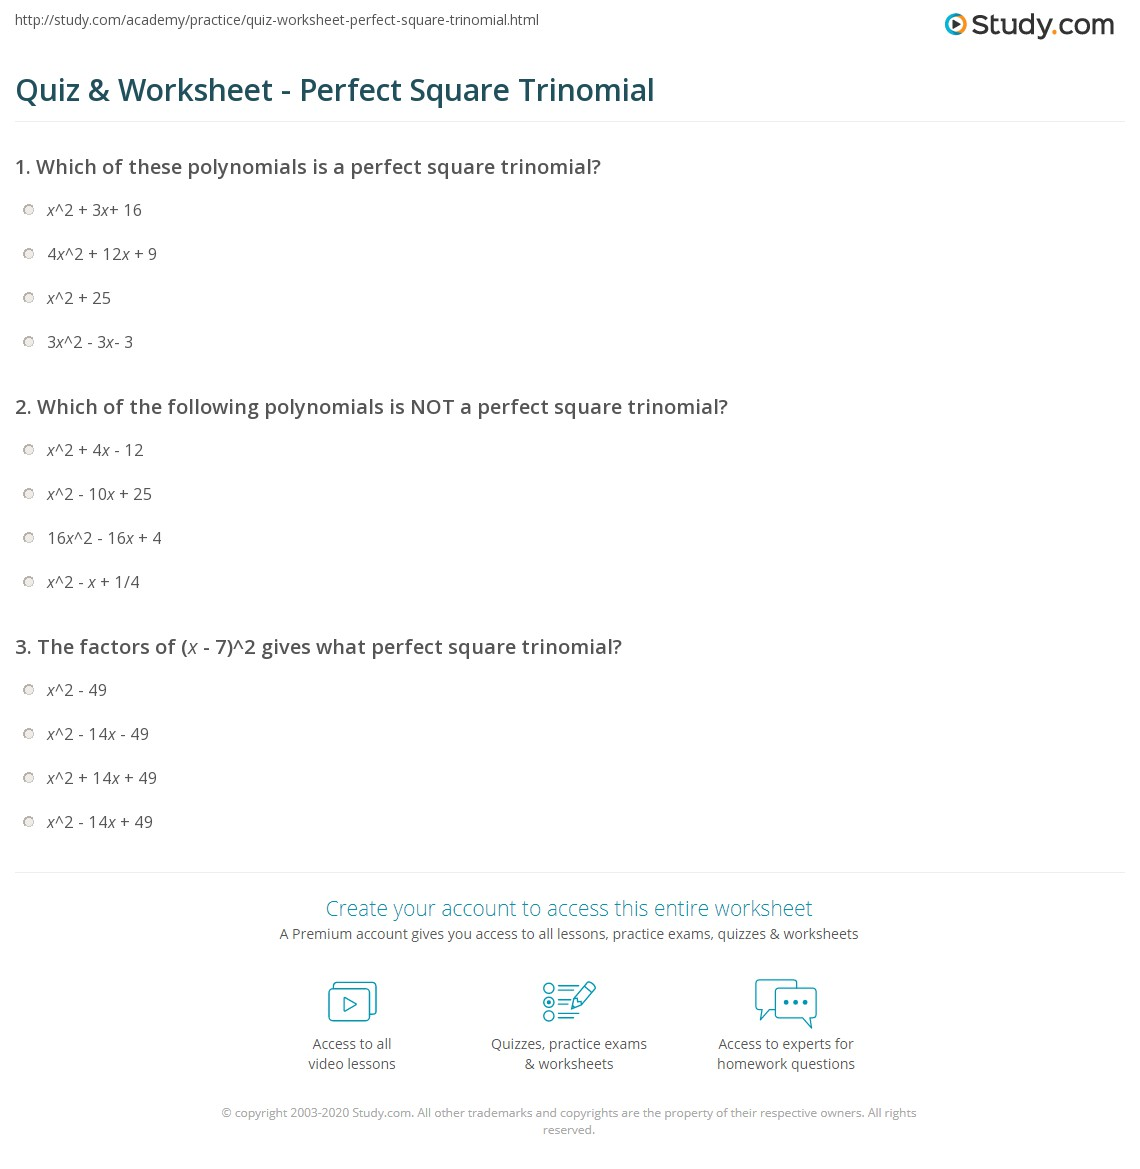 quiz worksheet perfect square trinomial. Black Bedroom Furniture Sets. Home Design Ideas